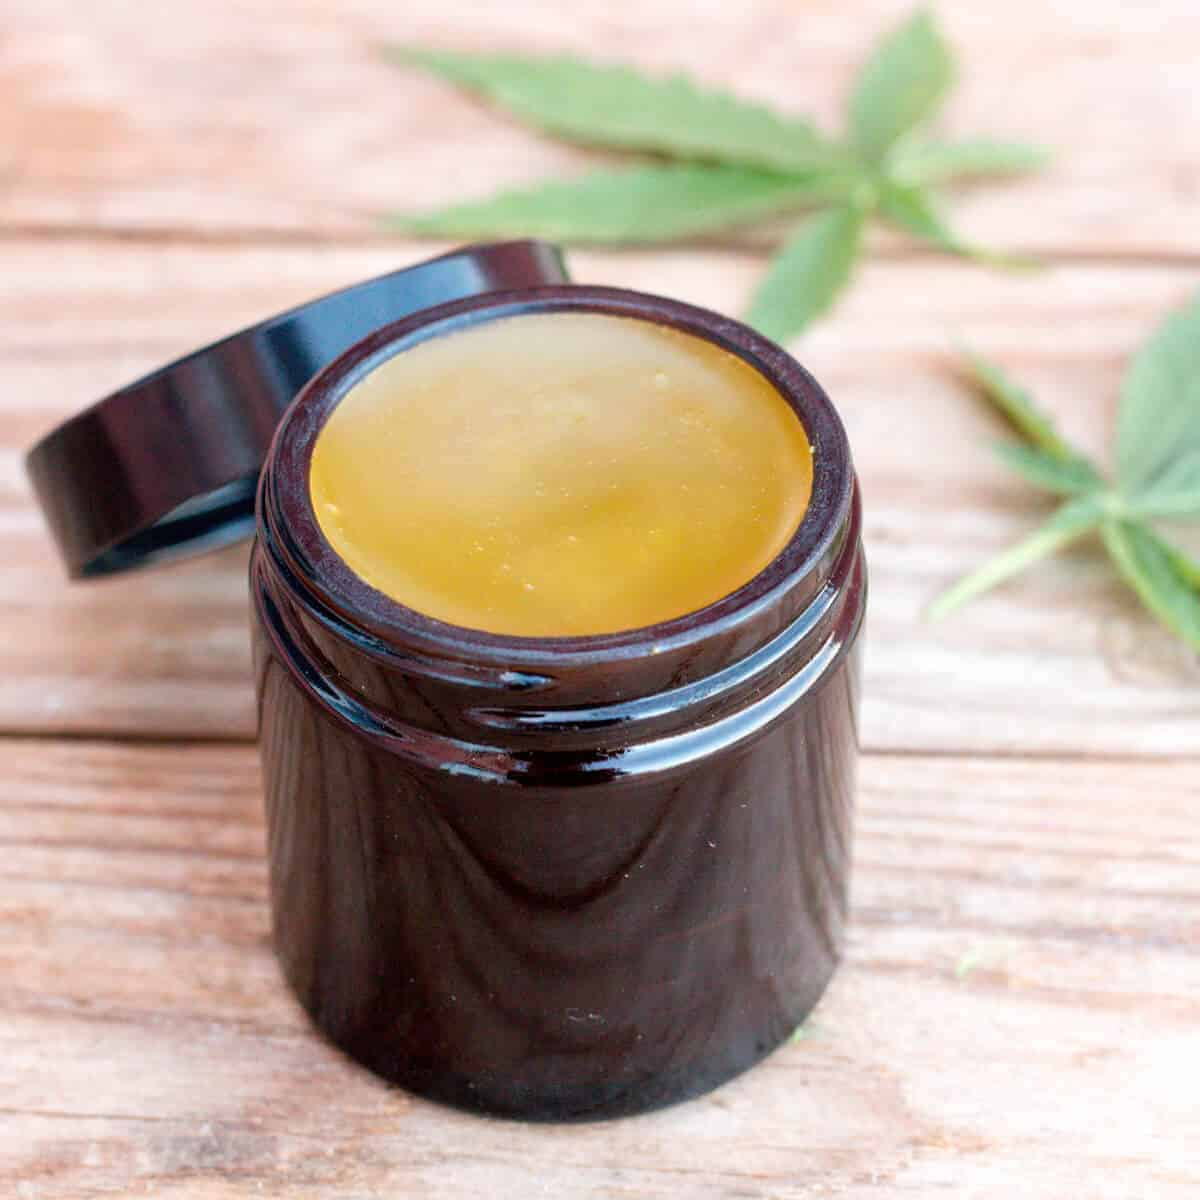 An amber colored glass jar filled with a homemade CBD salve.